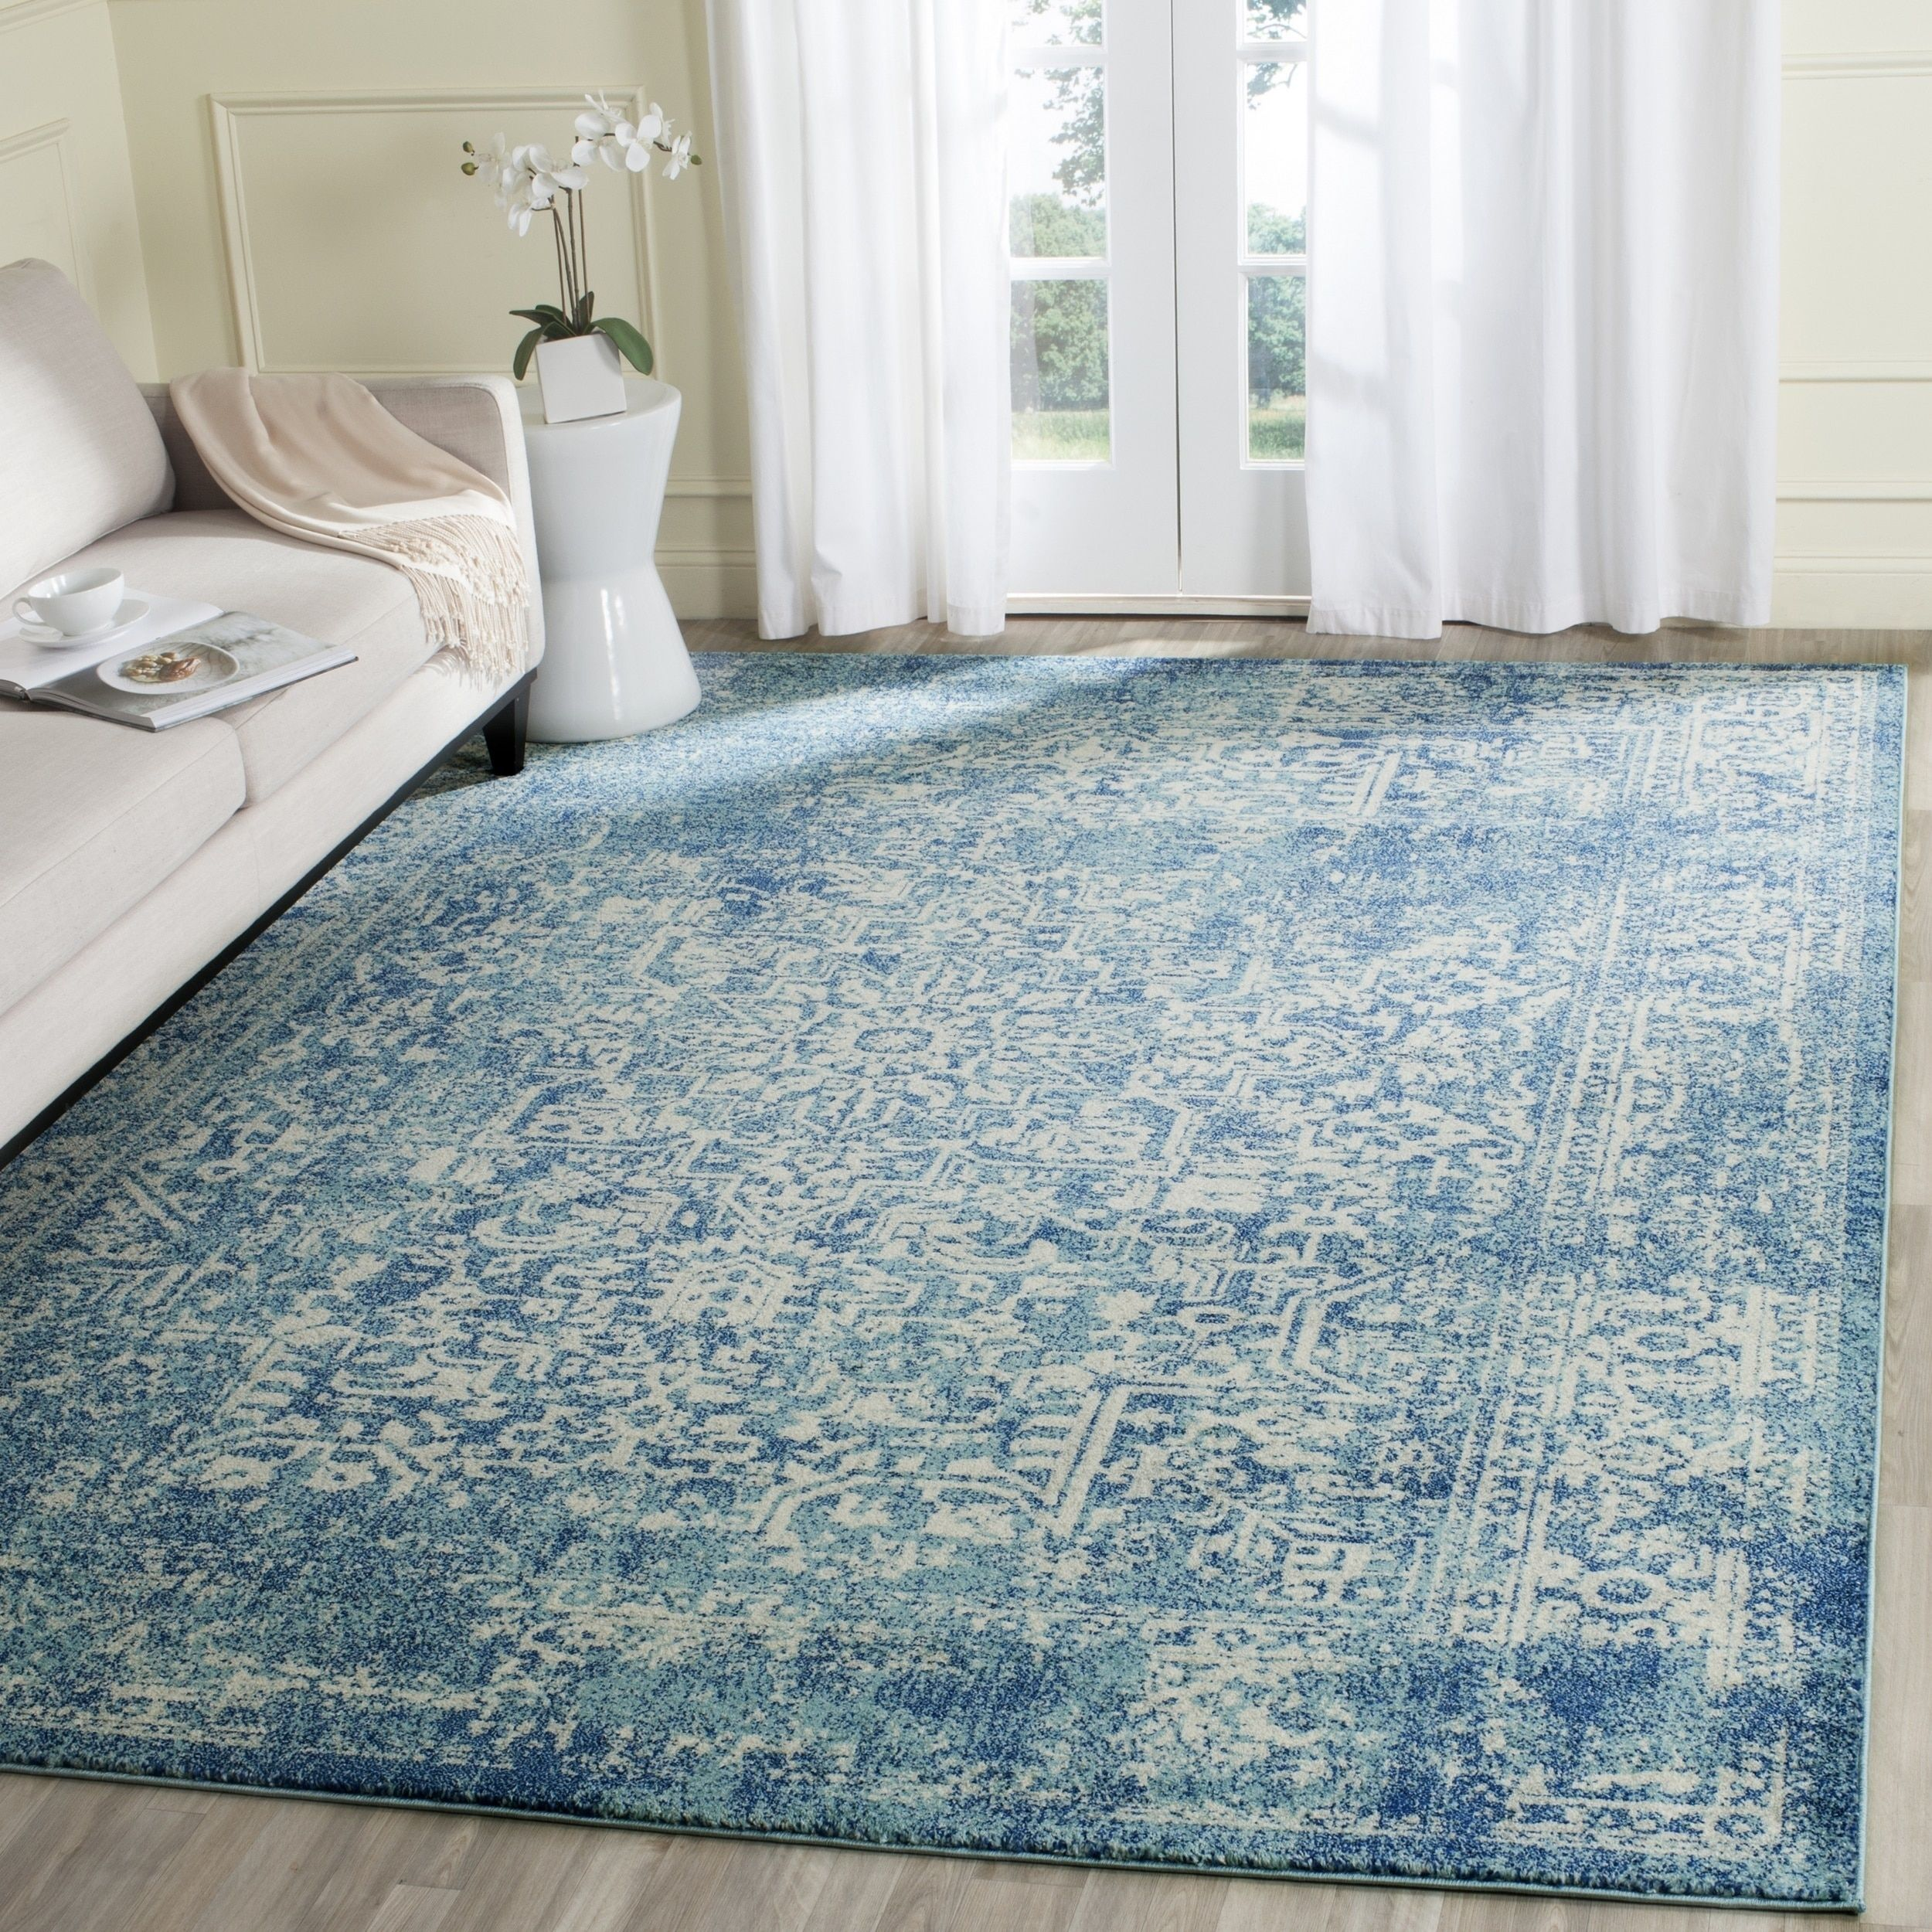 Our Gest Ever Memorial Day Blue Vintage Area Rugs Free Shipping